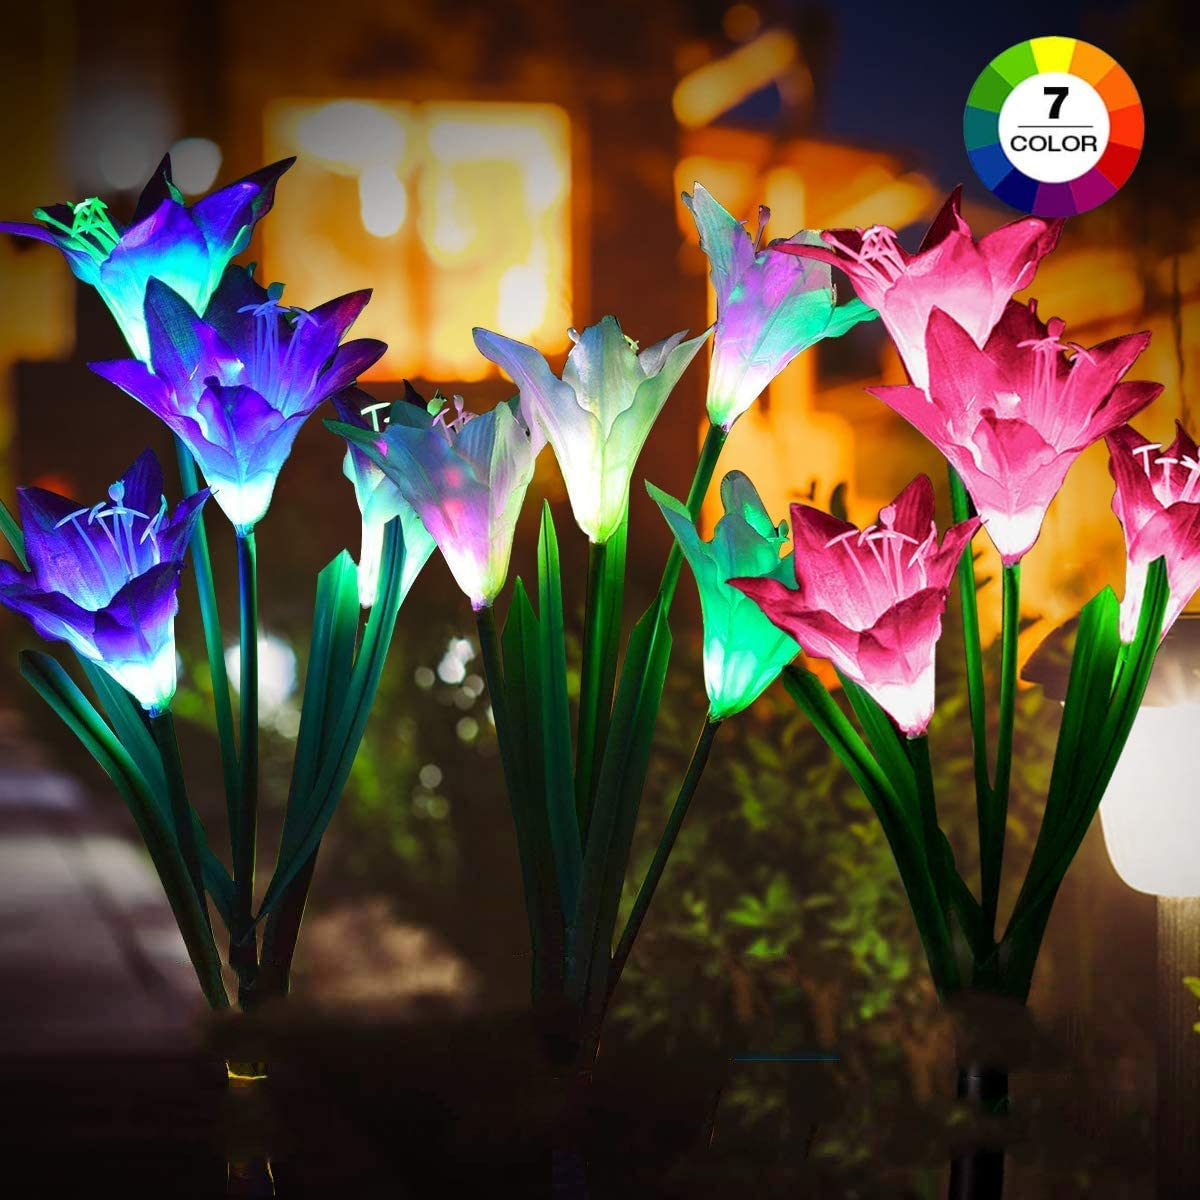 Solar Lights Outdoor – New Upgraded 3 Pack Solar Powered Garden Lights, Multi-Color Changing Lily Solar Flower Lights for Patio,Yard Decoration